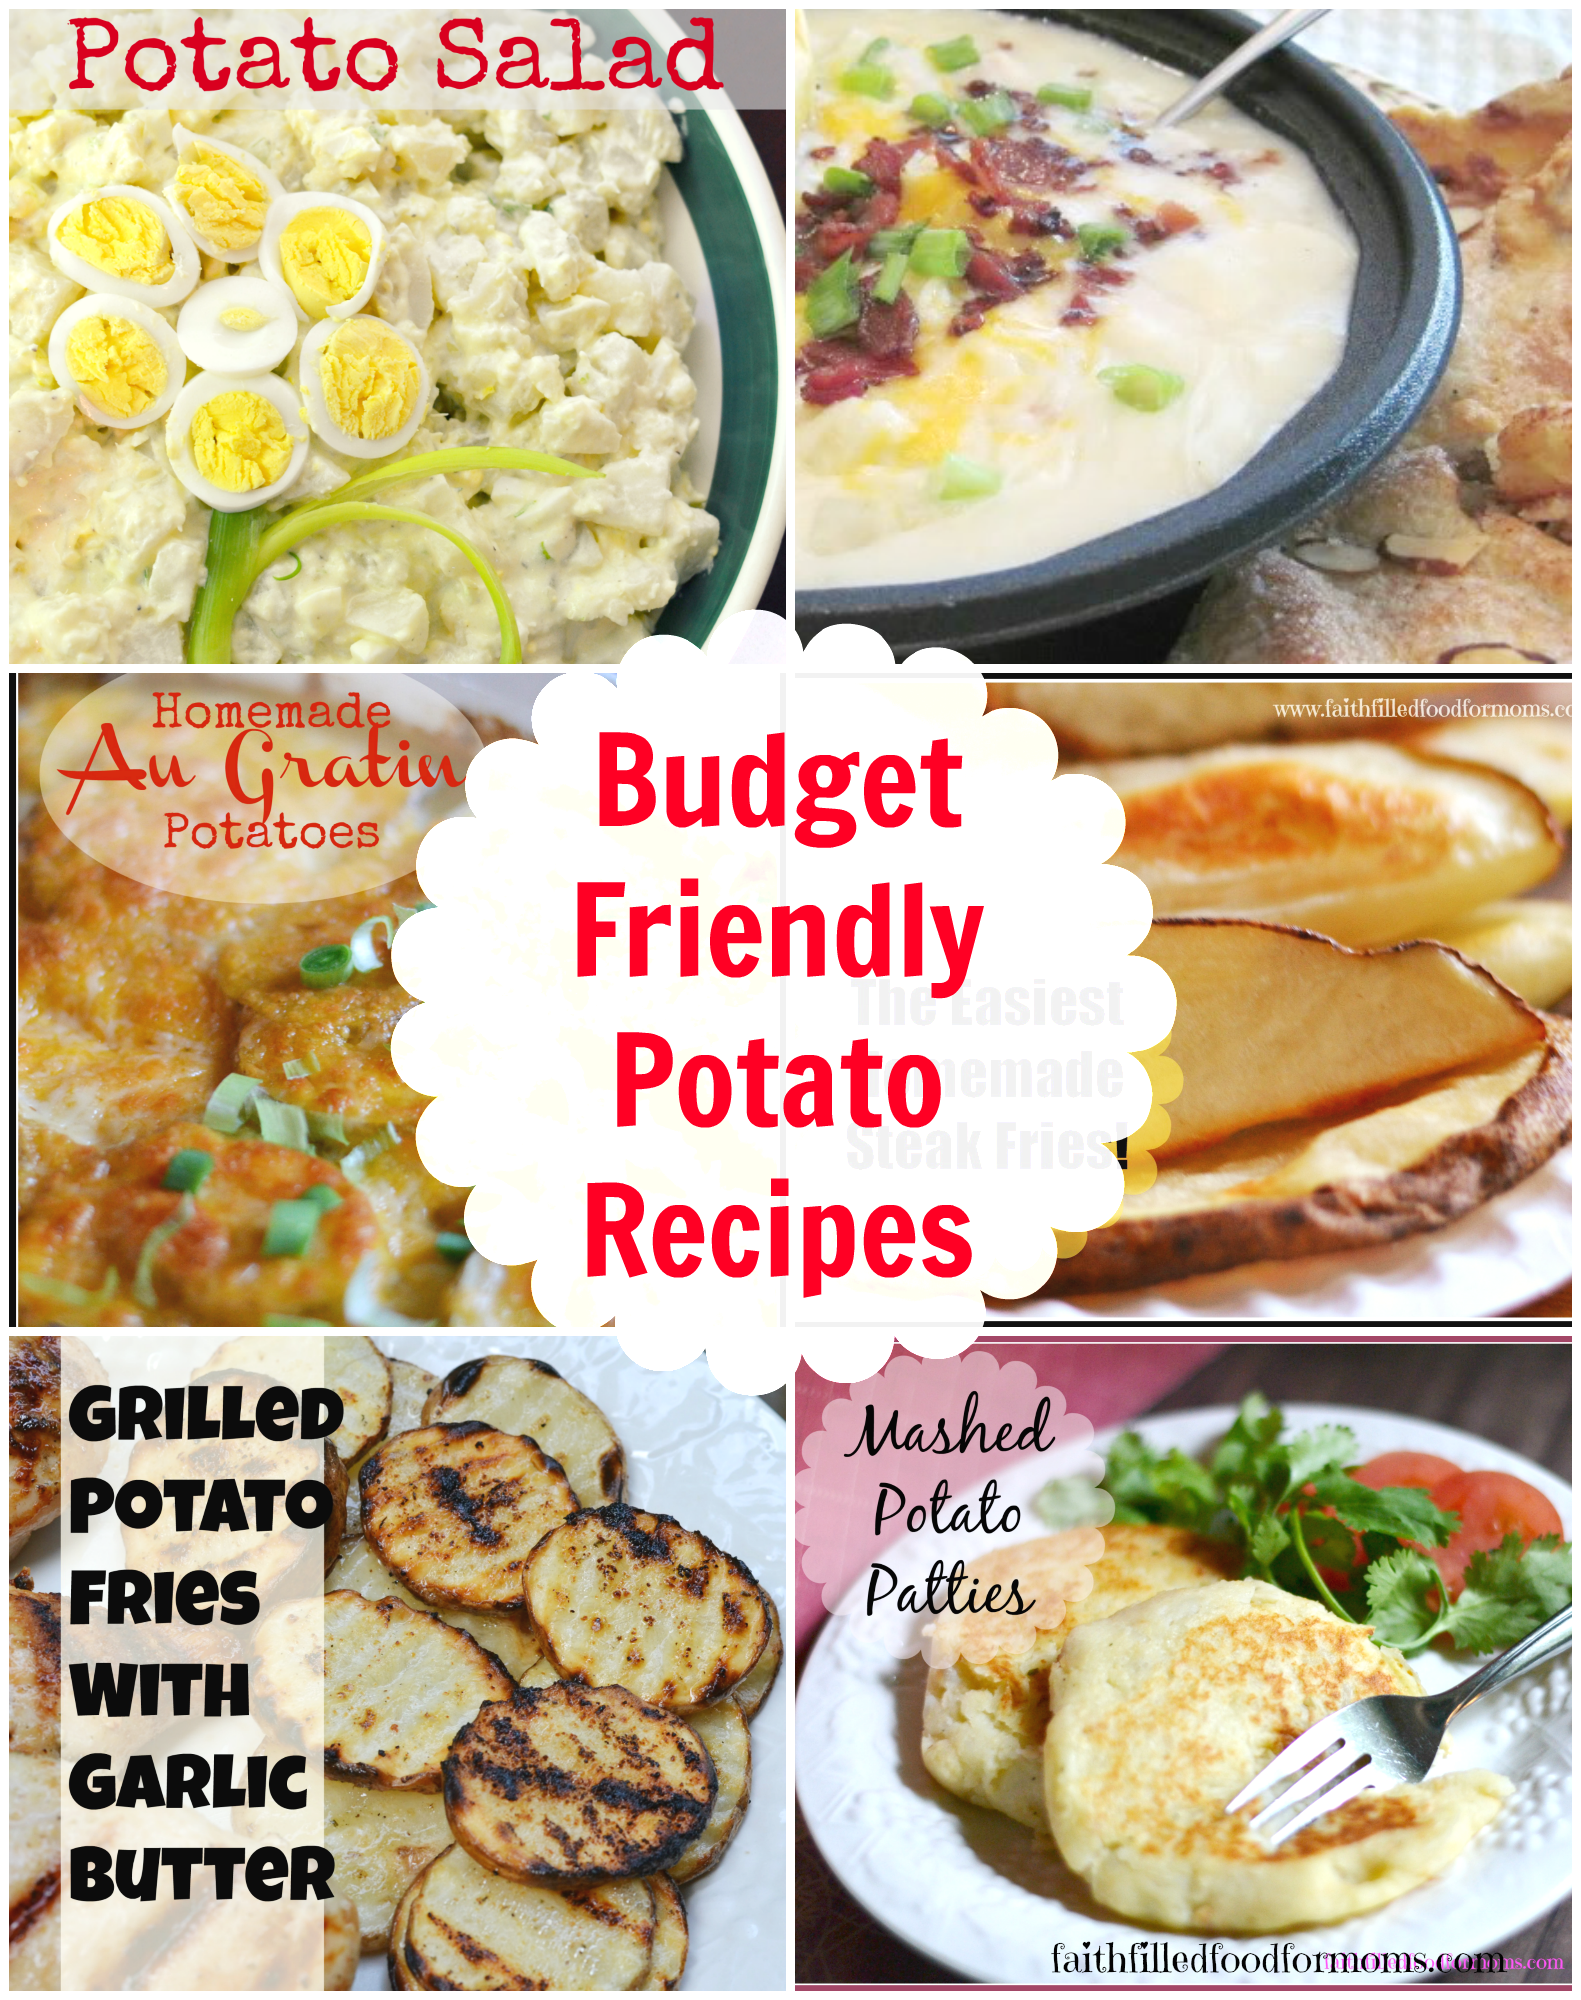 Budget friendly potato recipes faith filled food for moms forumfinder Gallery